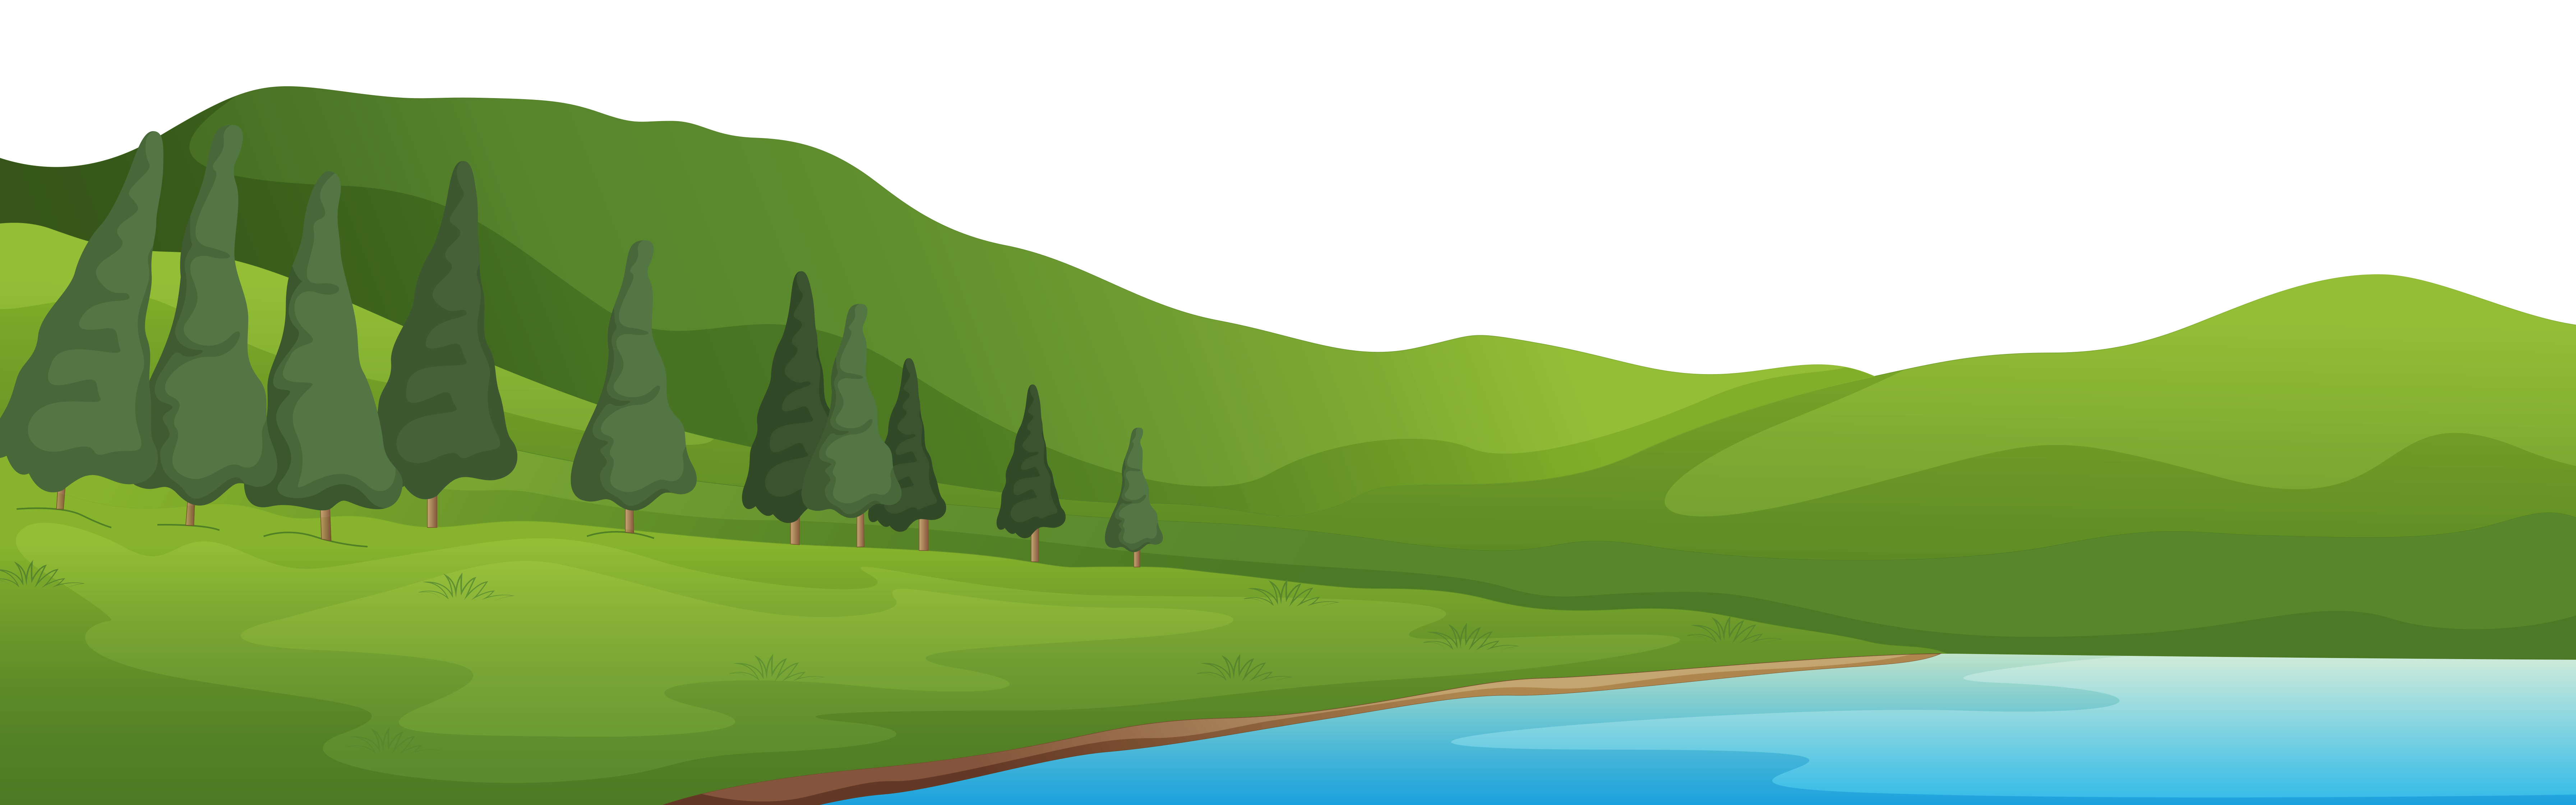 Transparent lake cartoon mountain. Collection of clipart